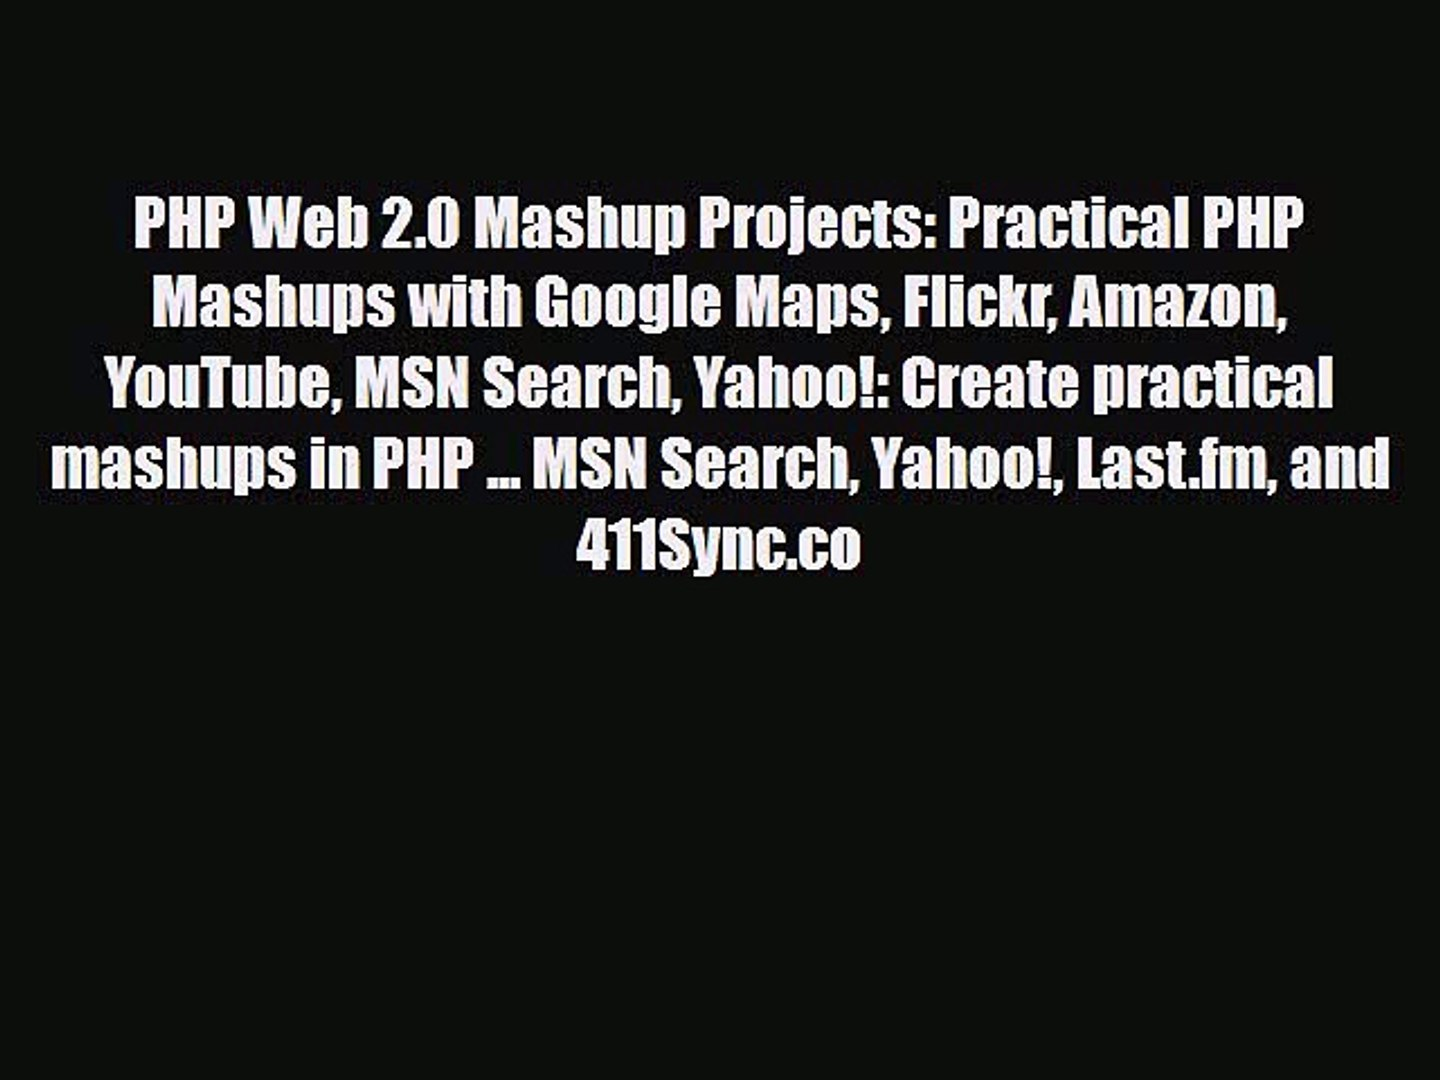 Download PHP Web 2.0 Mashup Projects: Practical PHP Mashups with Google Maps Flickr Amazon